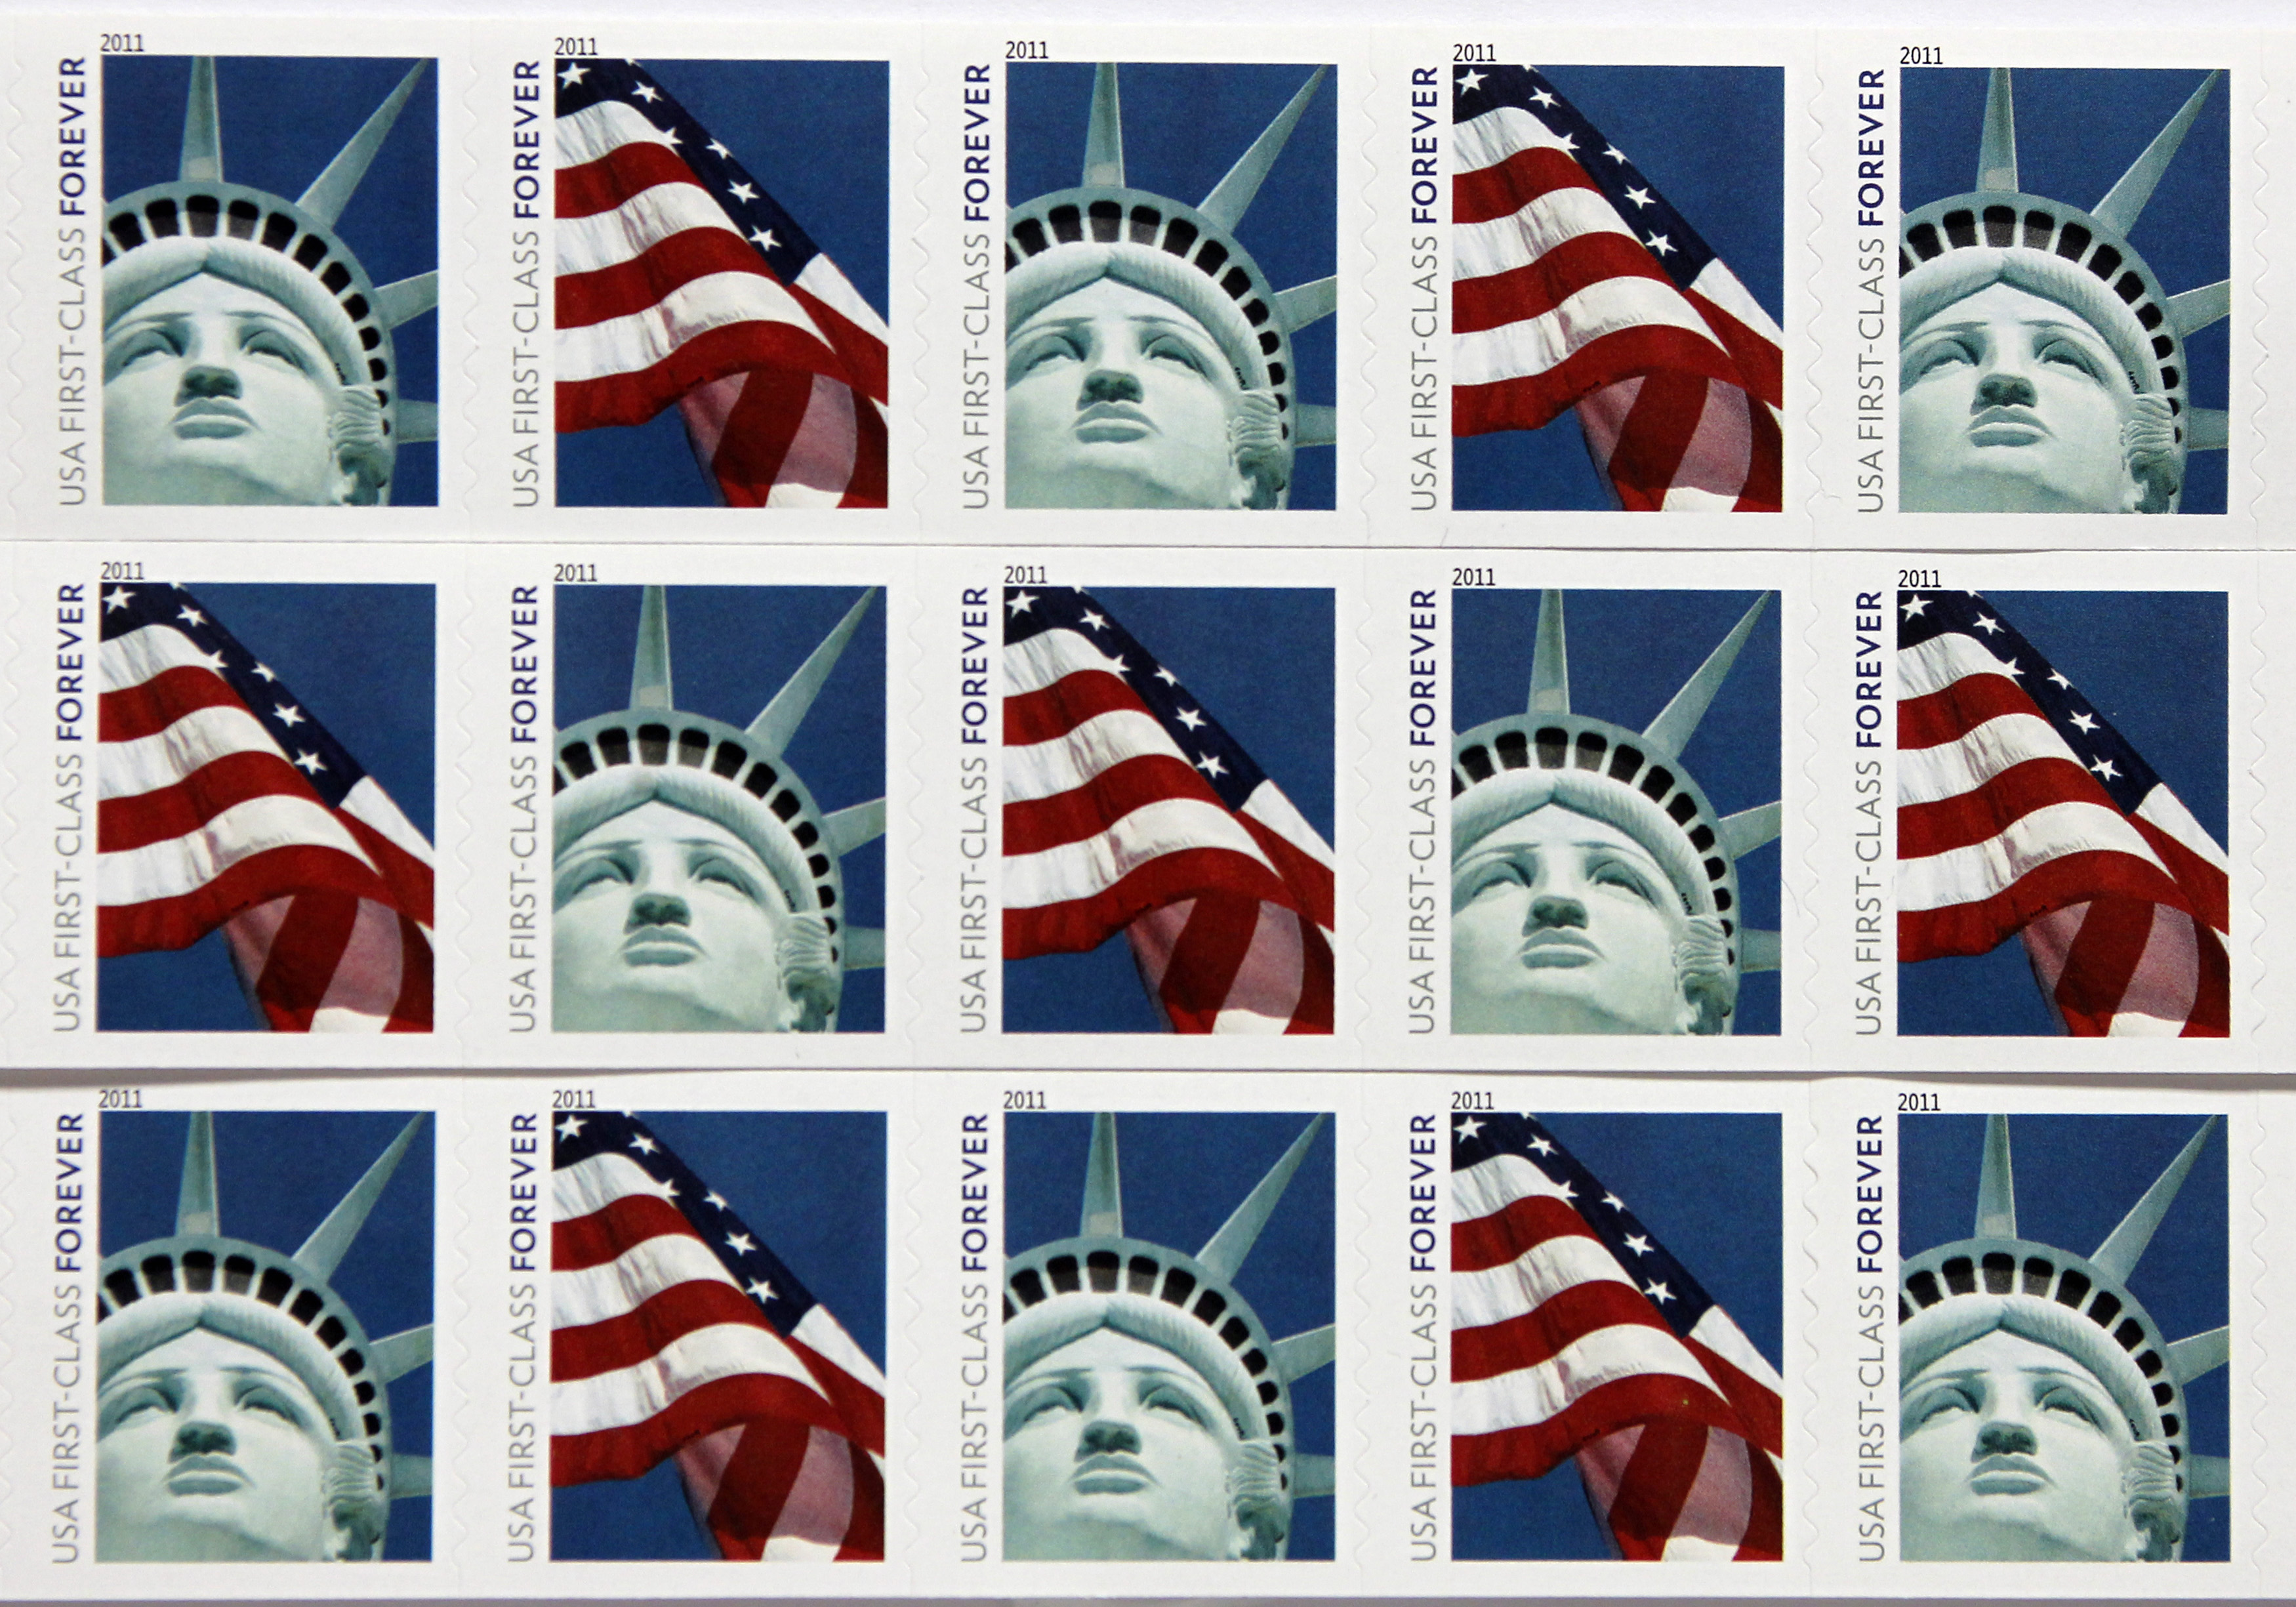 USPS Hit With $3 5M Judgment Over 'Lady Liberty' Stamp | Fortune